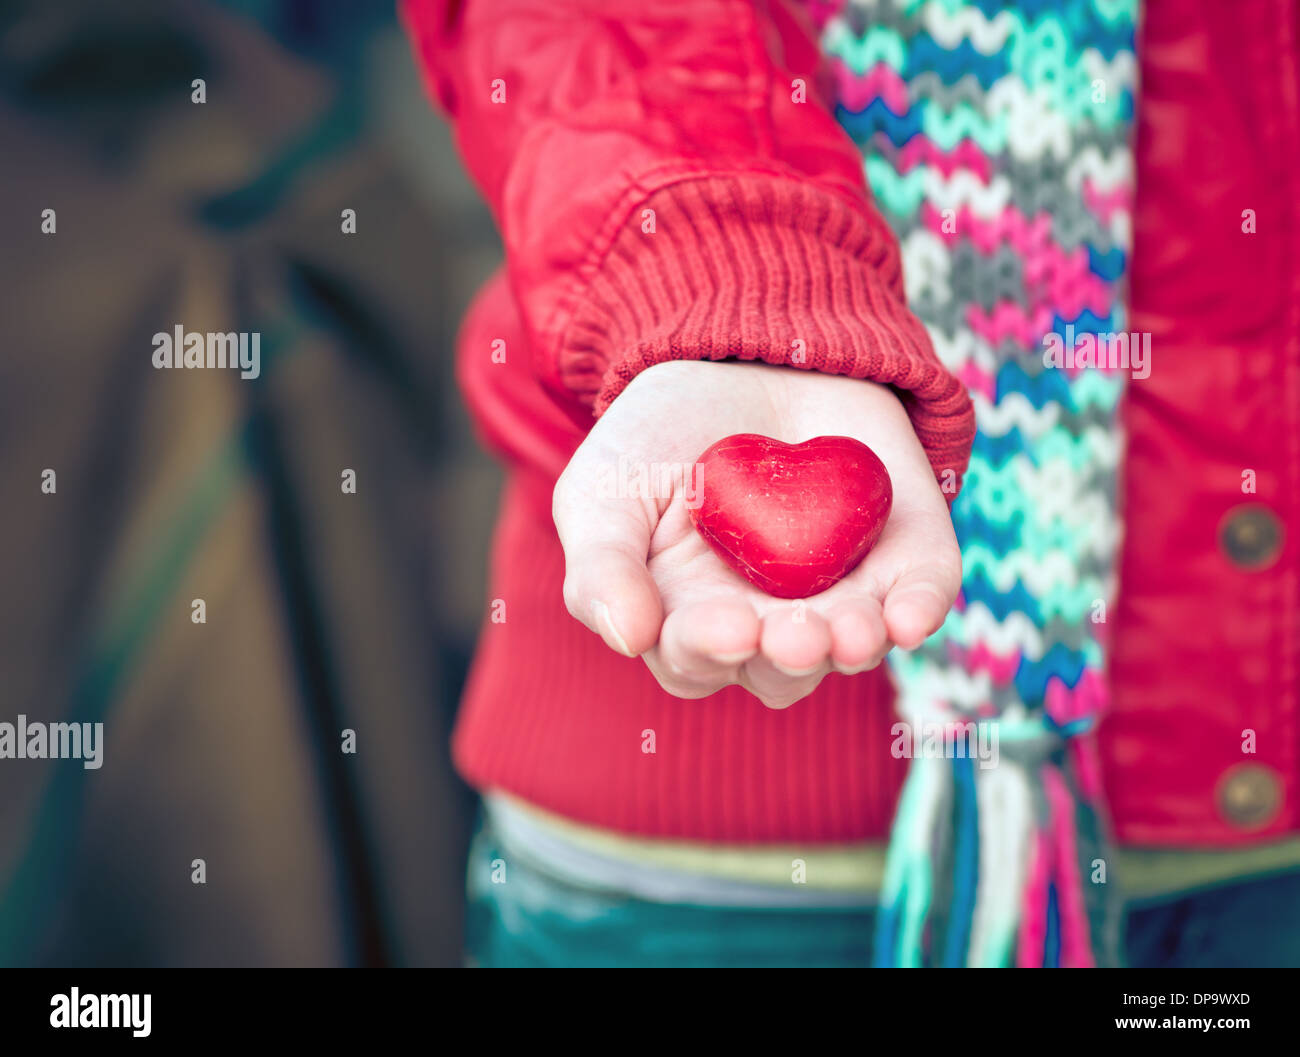 Heart shape love symbol in woman hands Valentines Day romantic ...